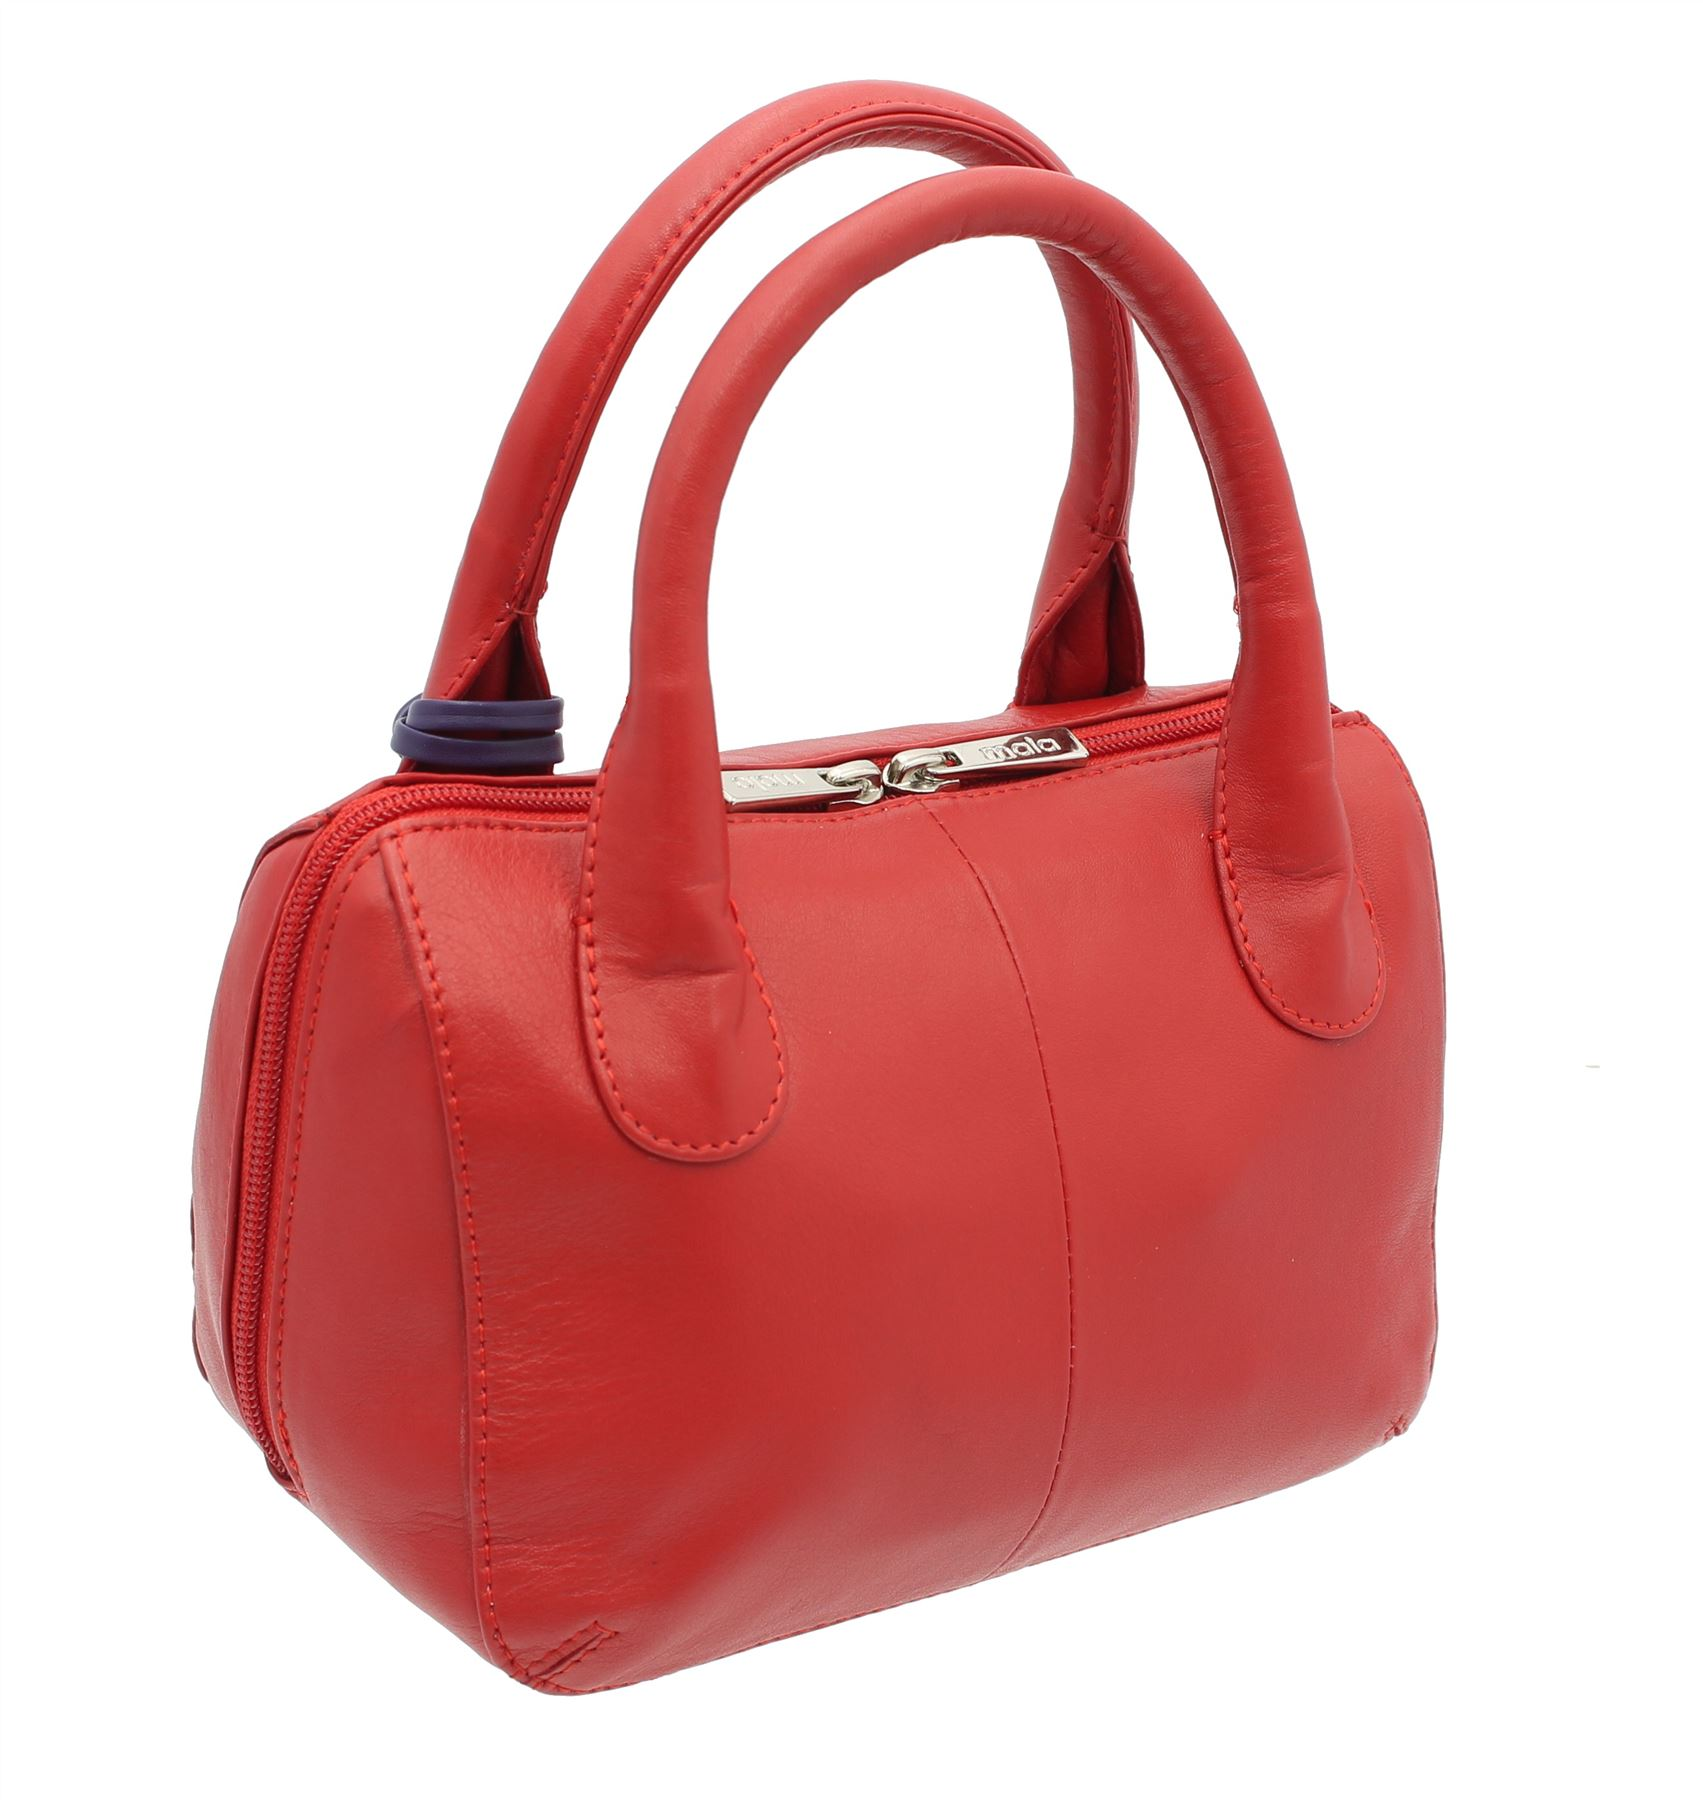 Mala Leather Anishka Collection Leather Grab Bag 774 75 Red for sale ... 8c512f36a636